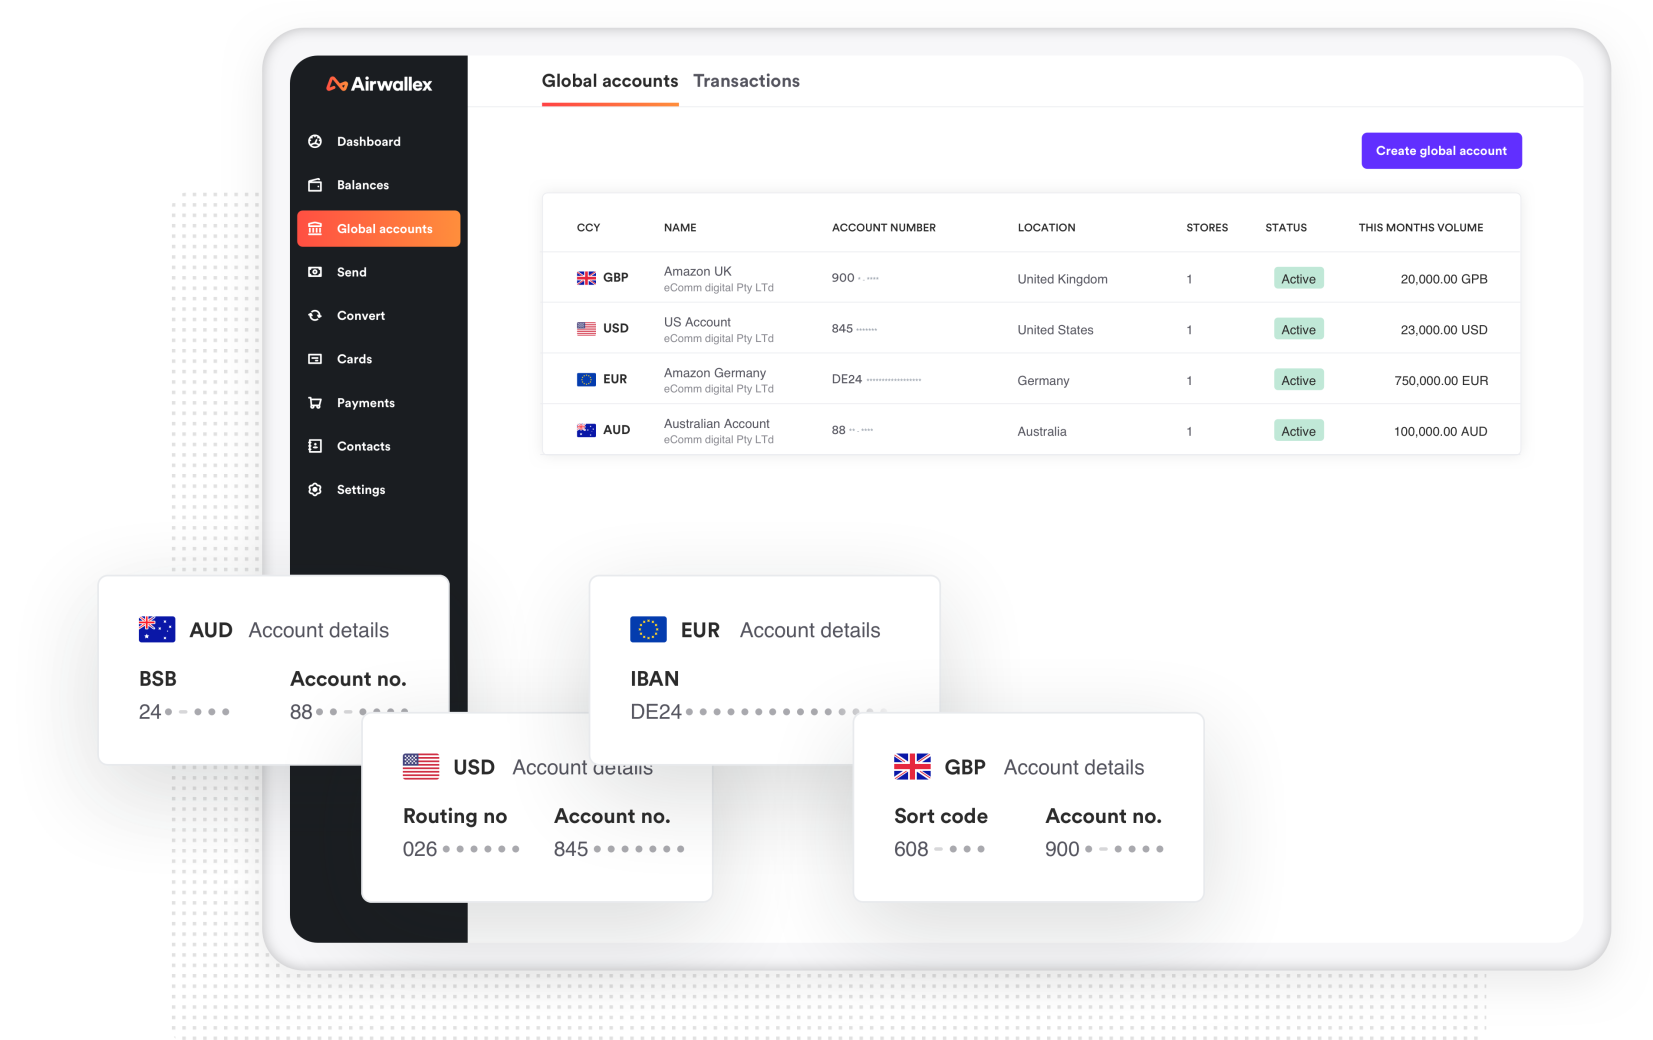 Foreign currency accounts in the Airwallex dashboard